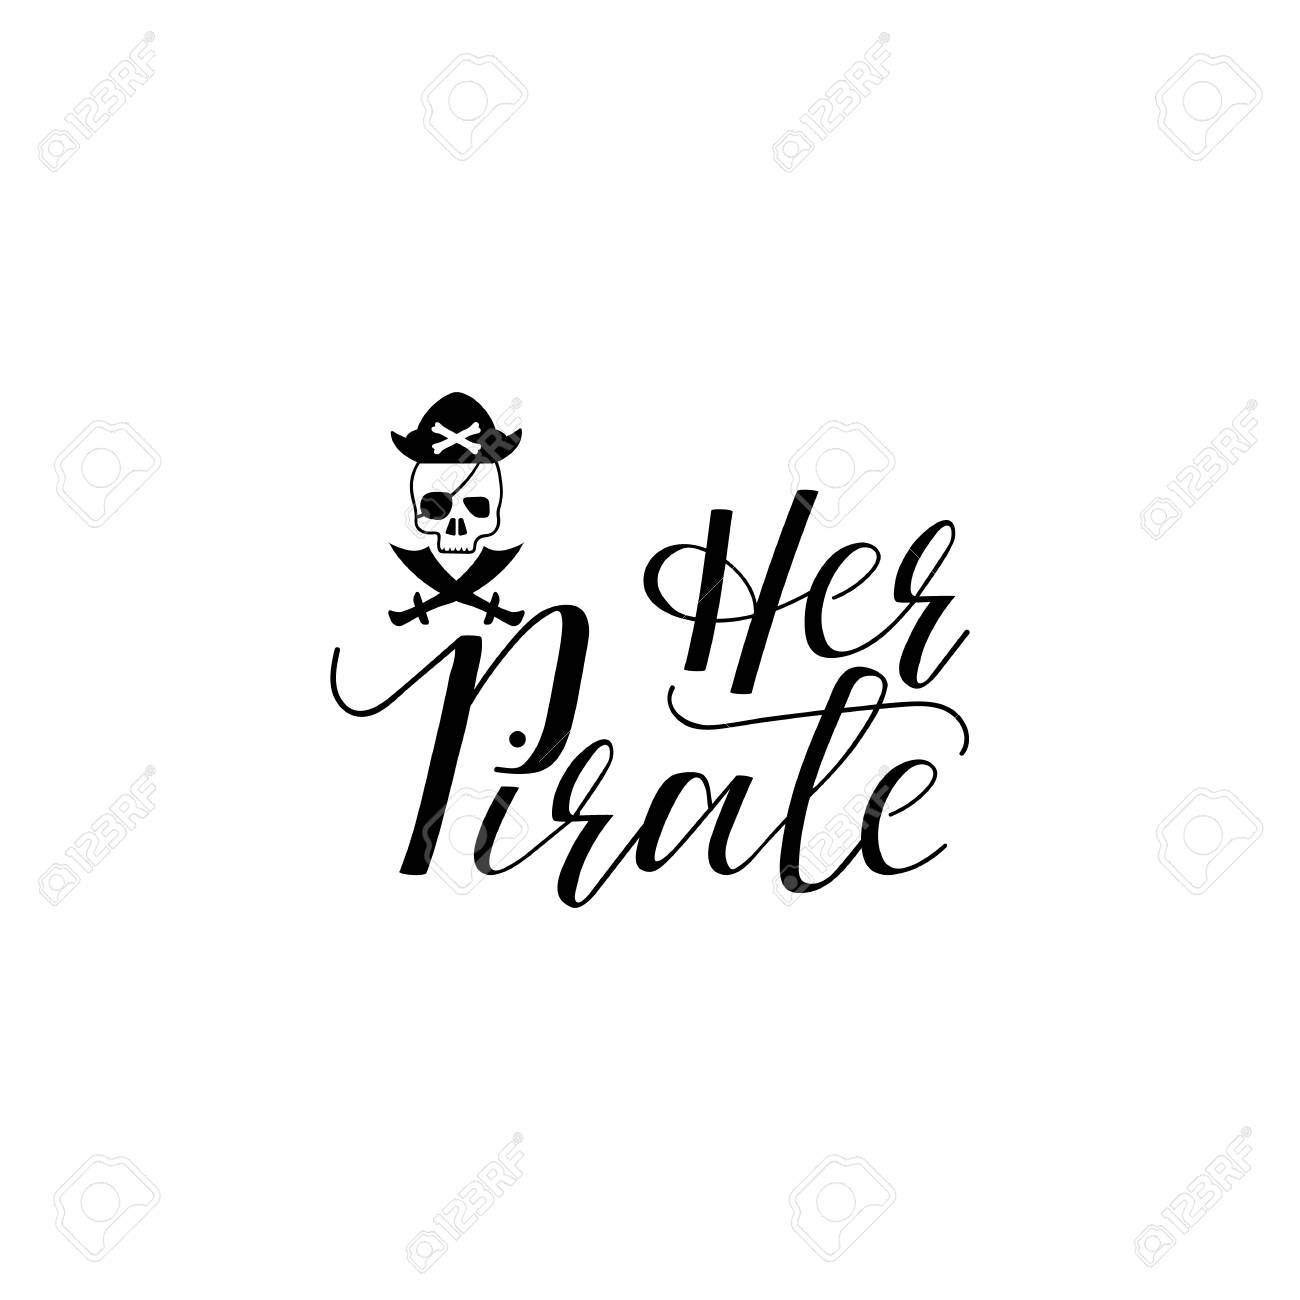 Her Pirate Lettering Hand Drawn Vector Illustration Element For Flyers Banner Postcards